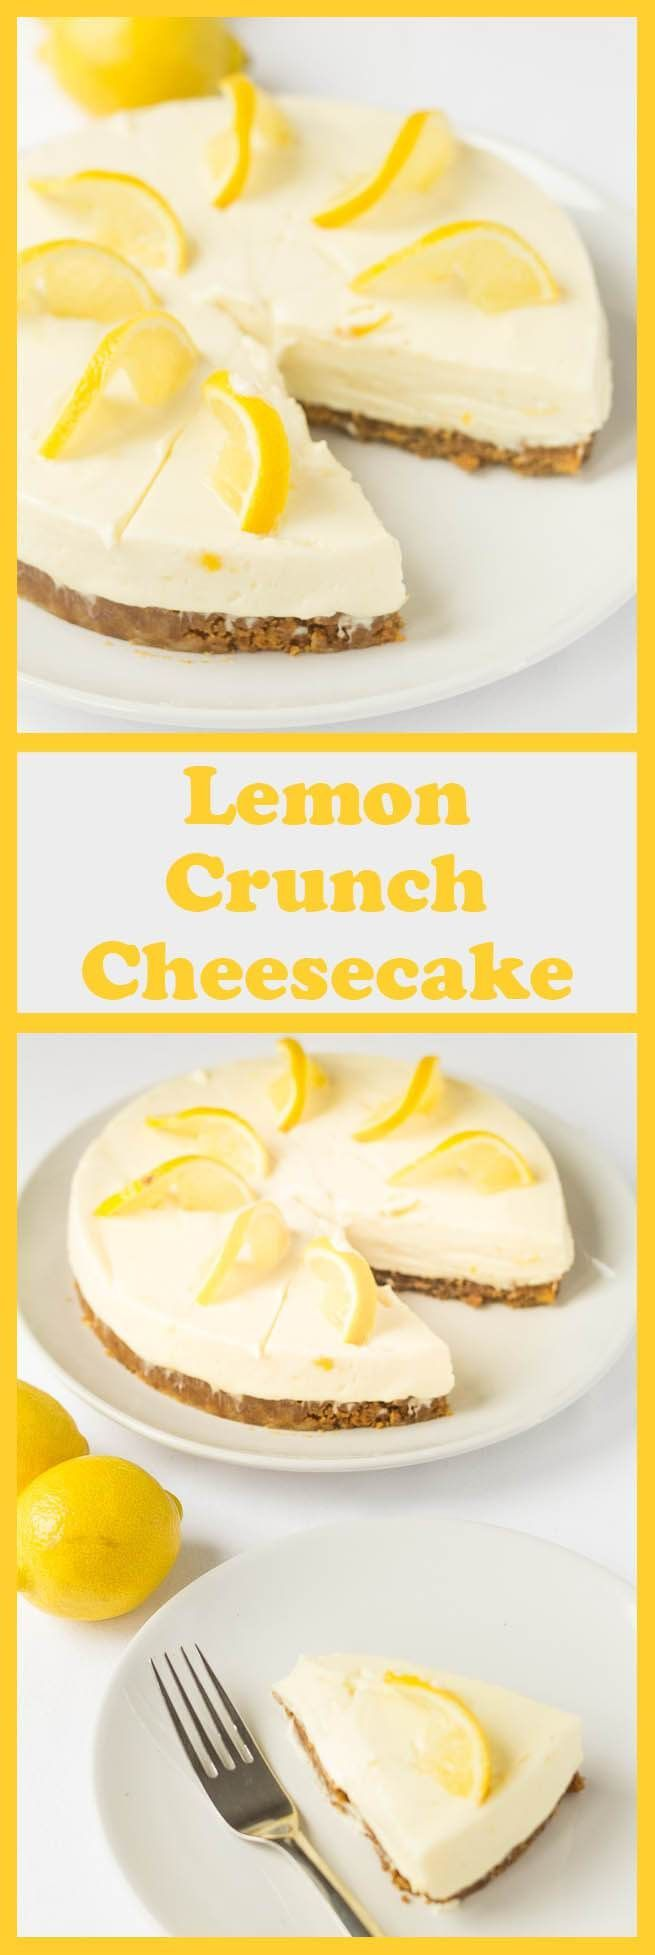 Lemon crunch cheesecake is a delicious no bake cheesecake recipe. It�s simple, low cost and easy to make. With an amazing zingy refreshing lemon flavour all it requires is a bit of time to set in your fridge.